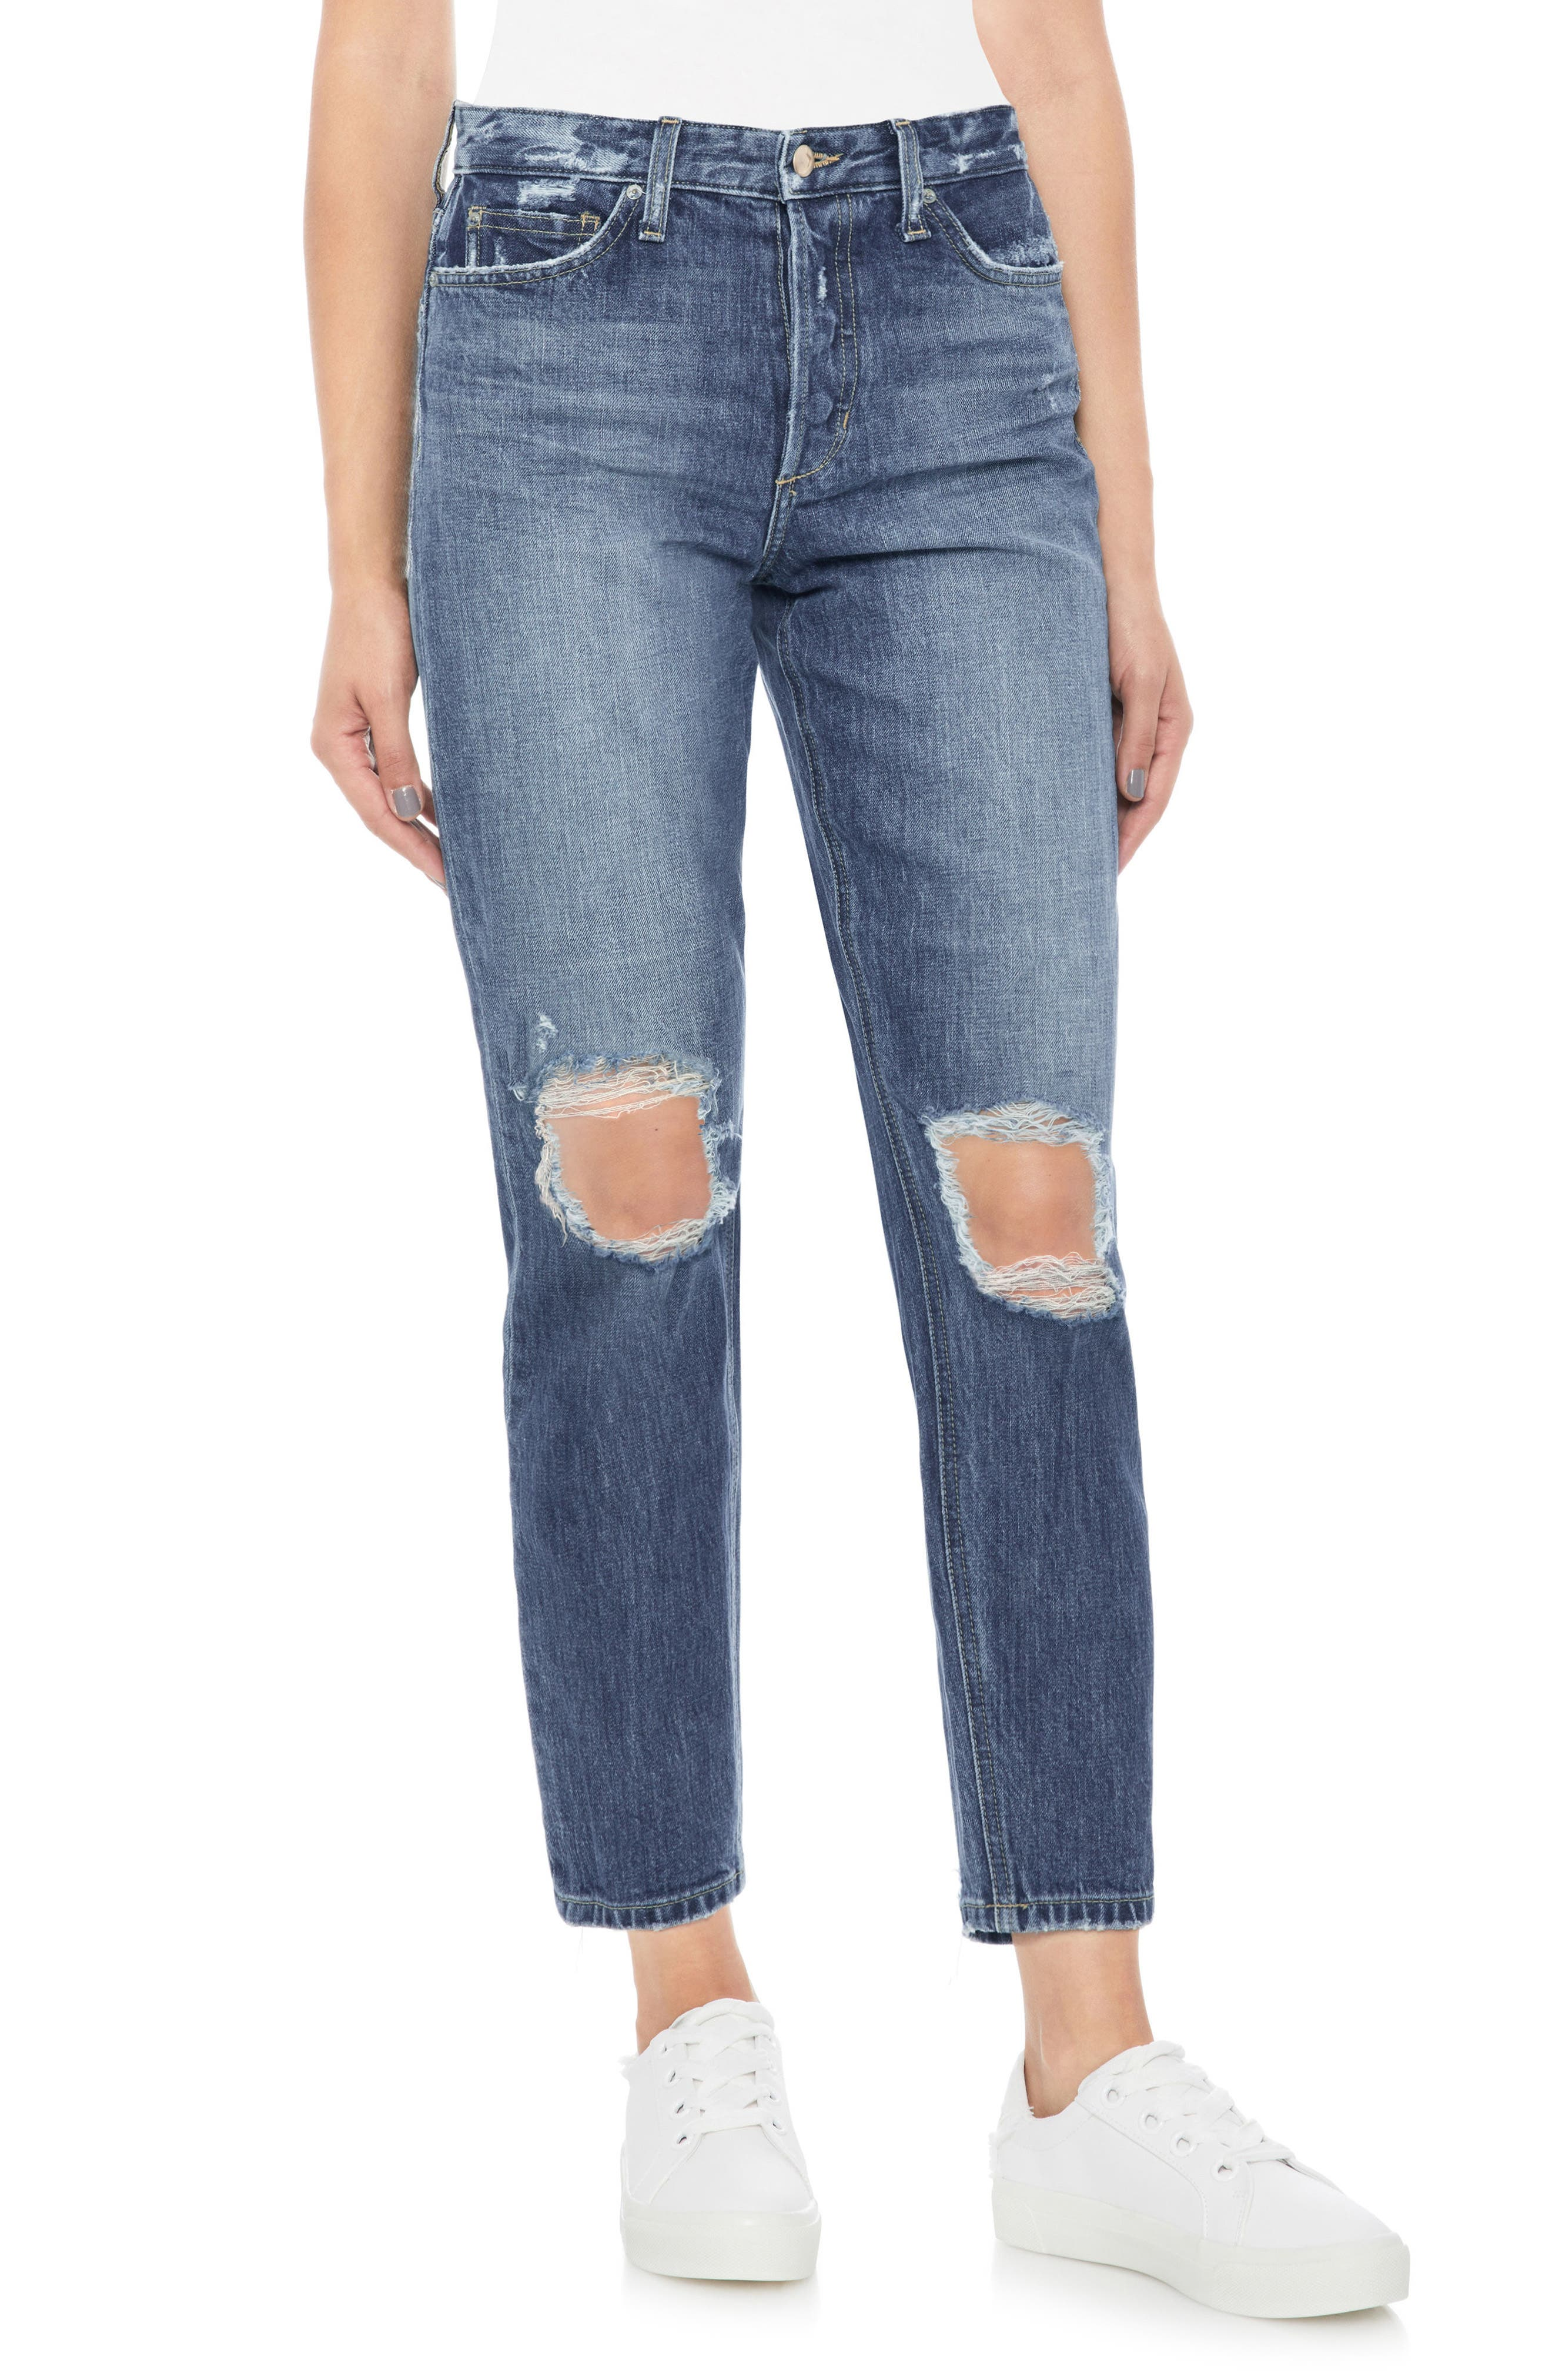 Smith Ripped High Waist Ankle Jeans,                             Main thumbnail 1, color,                             LANNAH